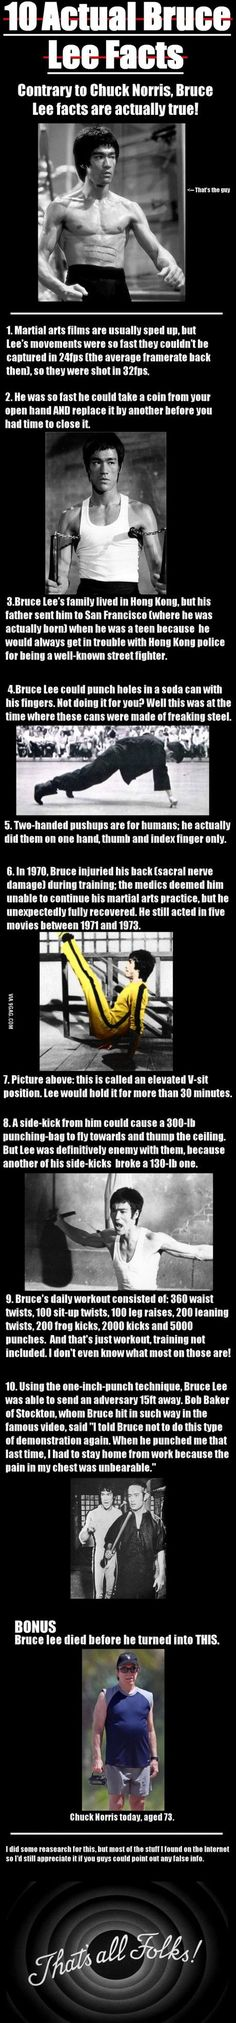 Some interesting facts about Bruce Lee // funny pictures - funny photos - funny images - funny pics - funny quotes - #lol #humor #funnypictures